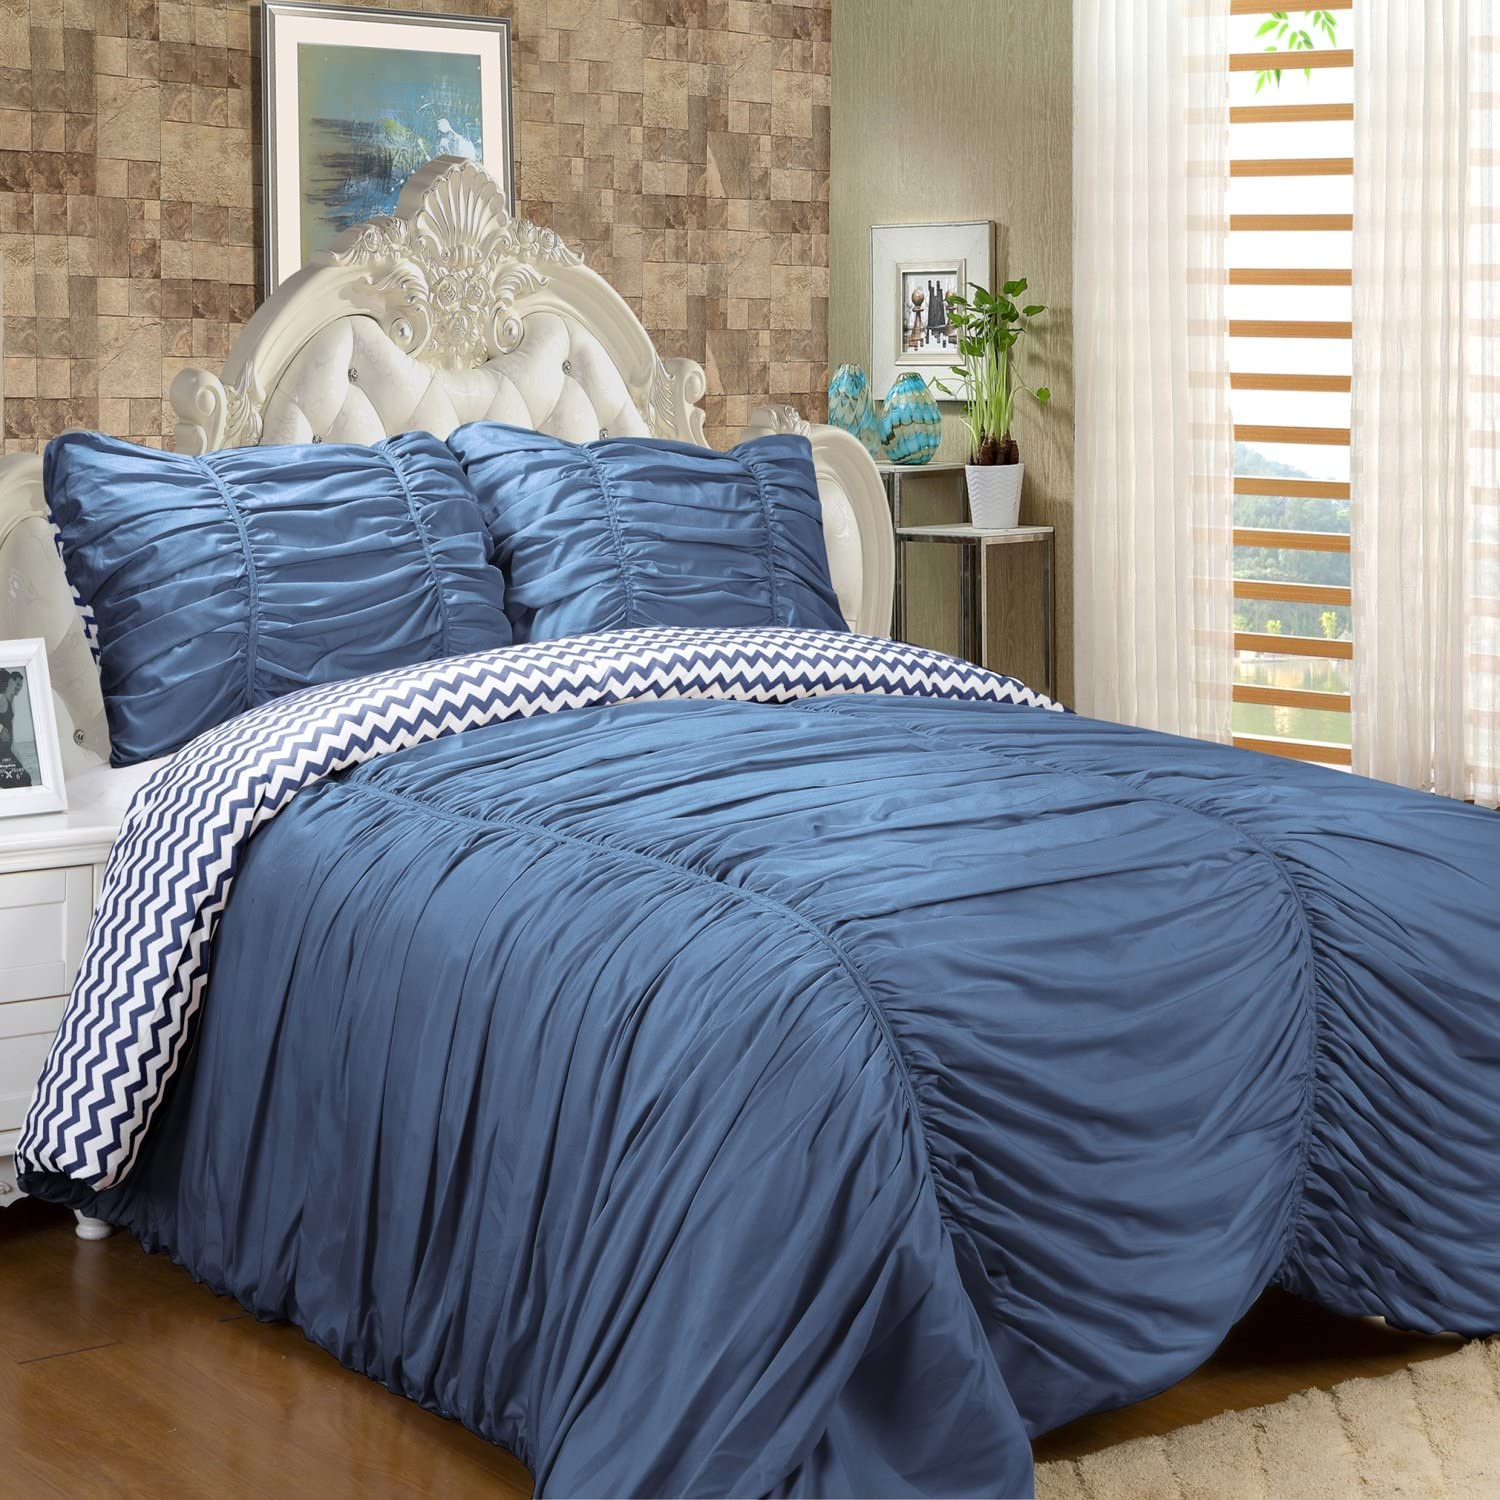 White Queen Sweet Home Collection 3 Piece Isabella Comforter Reversible Ruched//Chevron Print Comforter